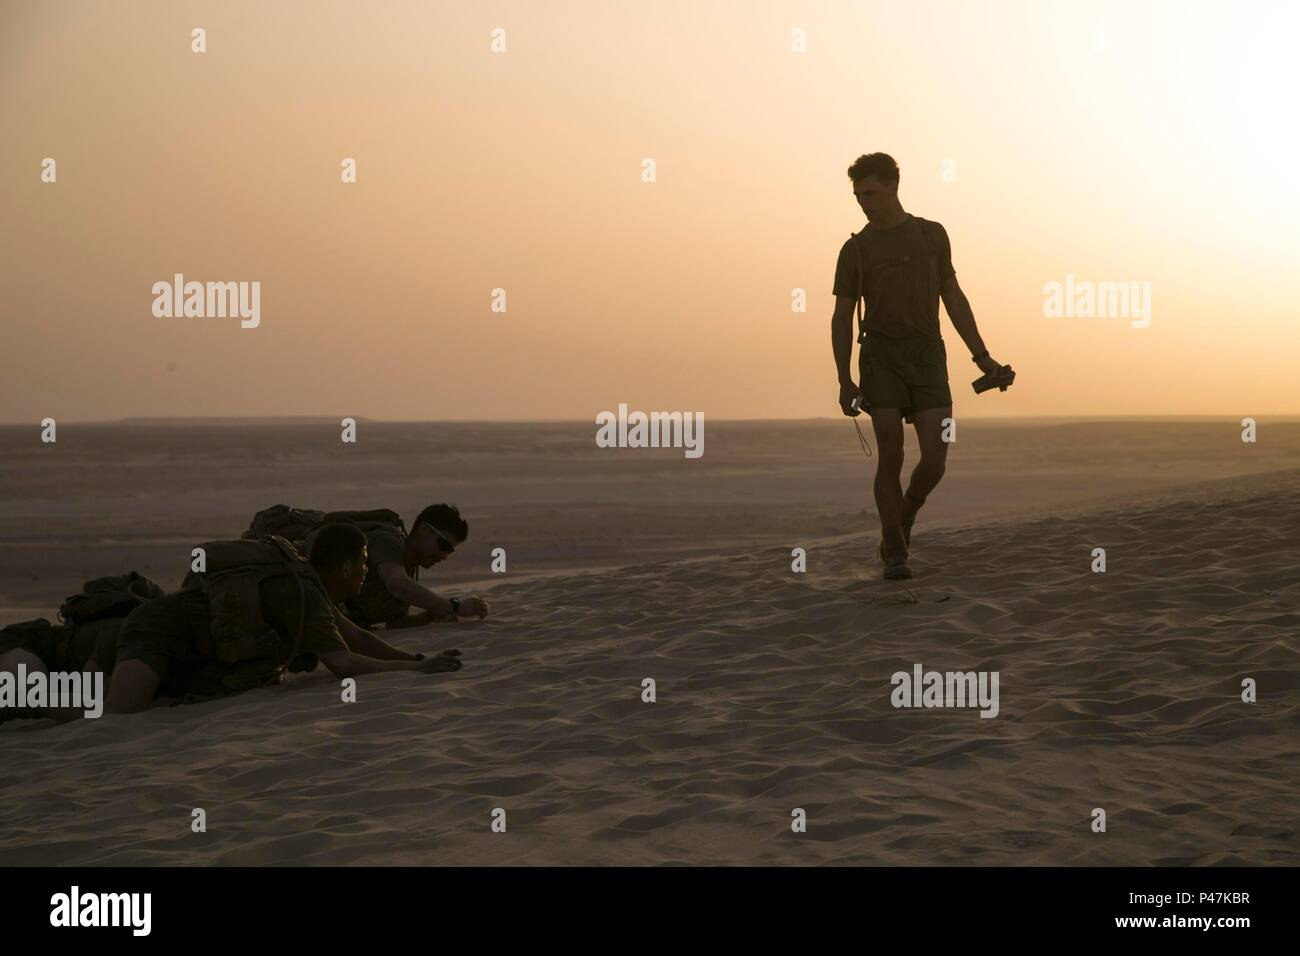 160621-M-KR317-259 U.S. 5TH FLEET AREA OF OPERATIONS (June 21, 2016) U.S. Marines with the 13th Marine Expeditionary Unit conduct physical training in between simulated missions during sustainment training. The 13th MEU is embarked on the Boxer Amphibious Ready Group and is deployed to maintain regional security in the U.S. 5th Fleet area of operations. (U.S. Marine Corps photo by Sgt. Briauna Birl/RELEASED) Stock Photo